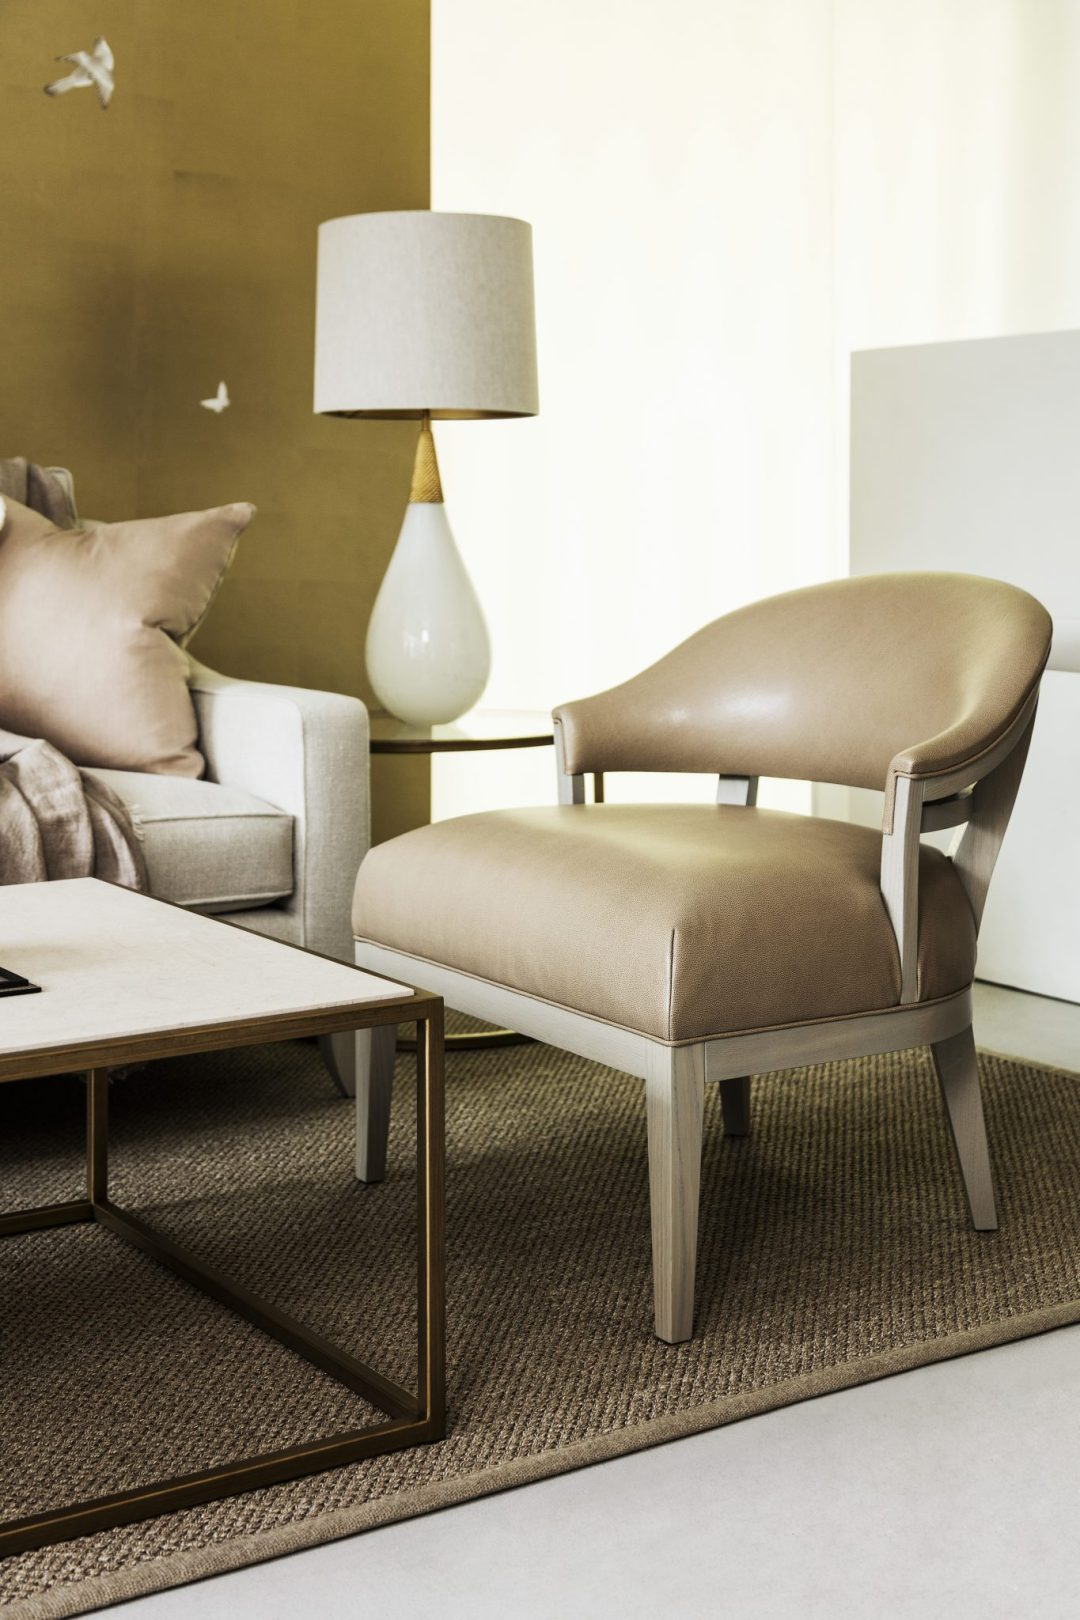 Sophie Paterson upholstery collection with The Sofa and Chair Company_chair 3_Photography by Ray Main